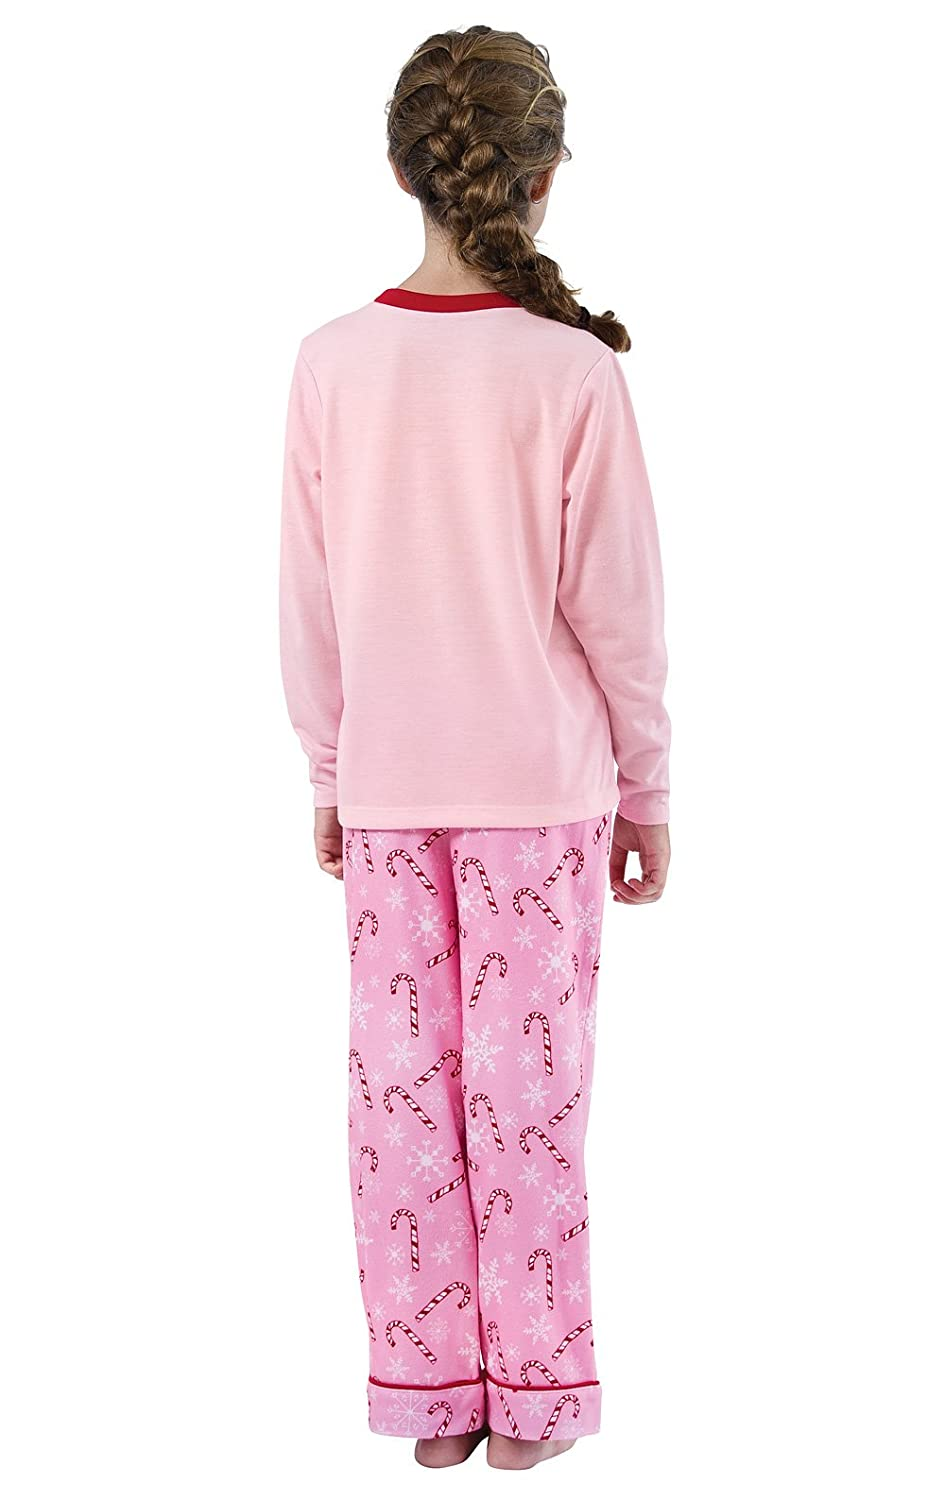 b3506a5176 Amazon.com  PajamaGram Big Girls  PJs Set - Pajama Sets for Girls ...